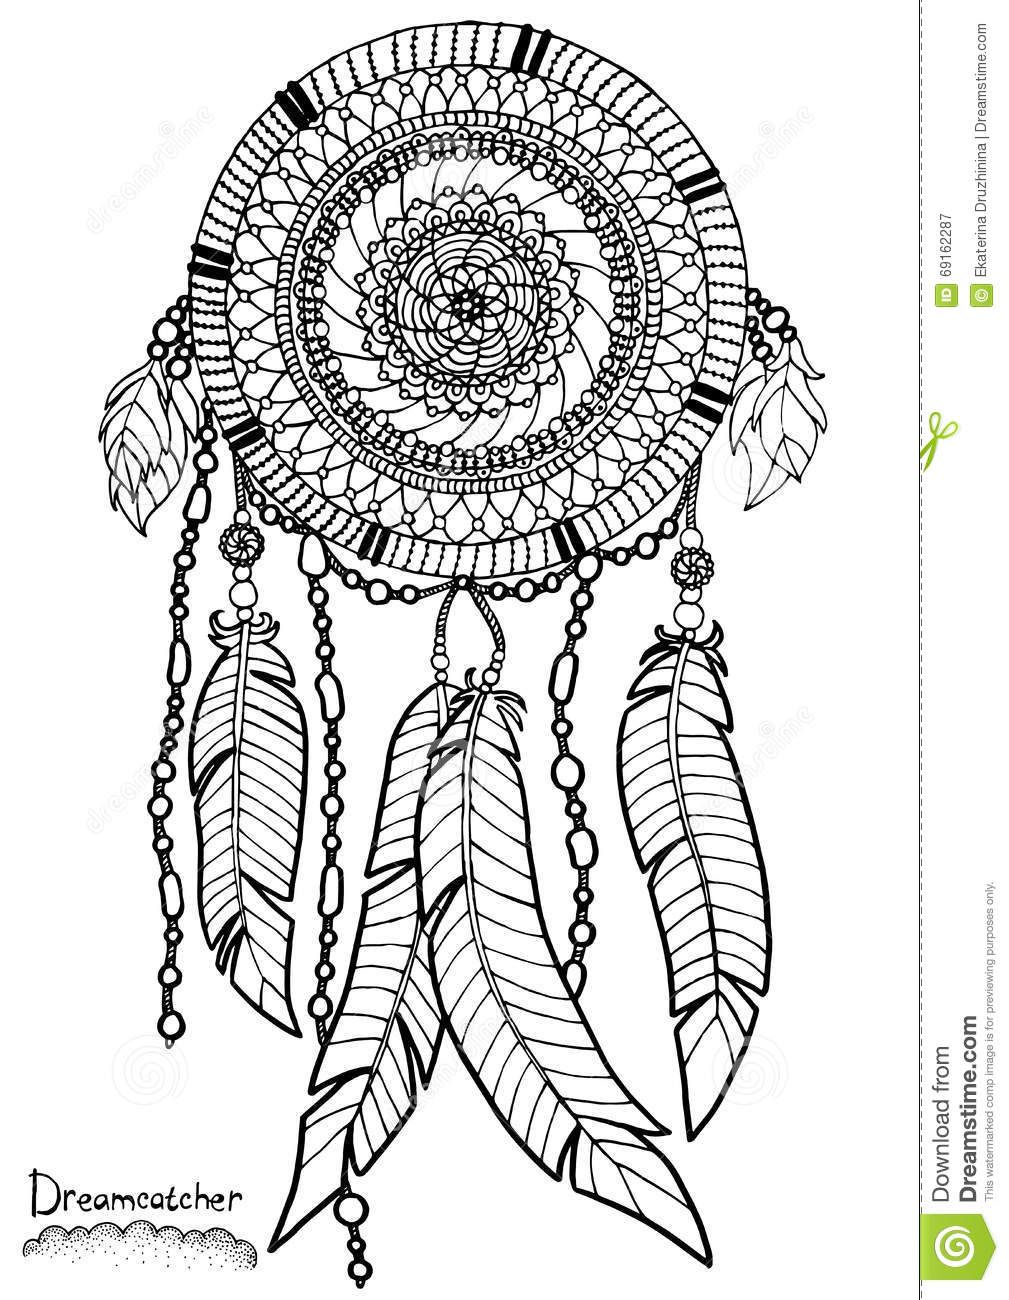 coloring pages for adults dream catchers dream catcher coloring pages for adults dream catcher coloring catchers for adults dream pages